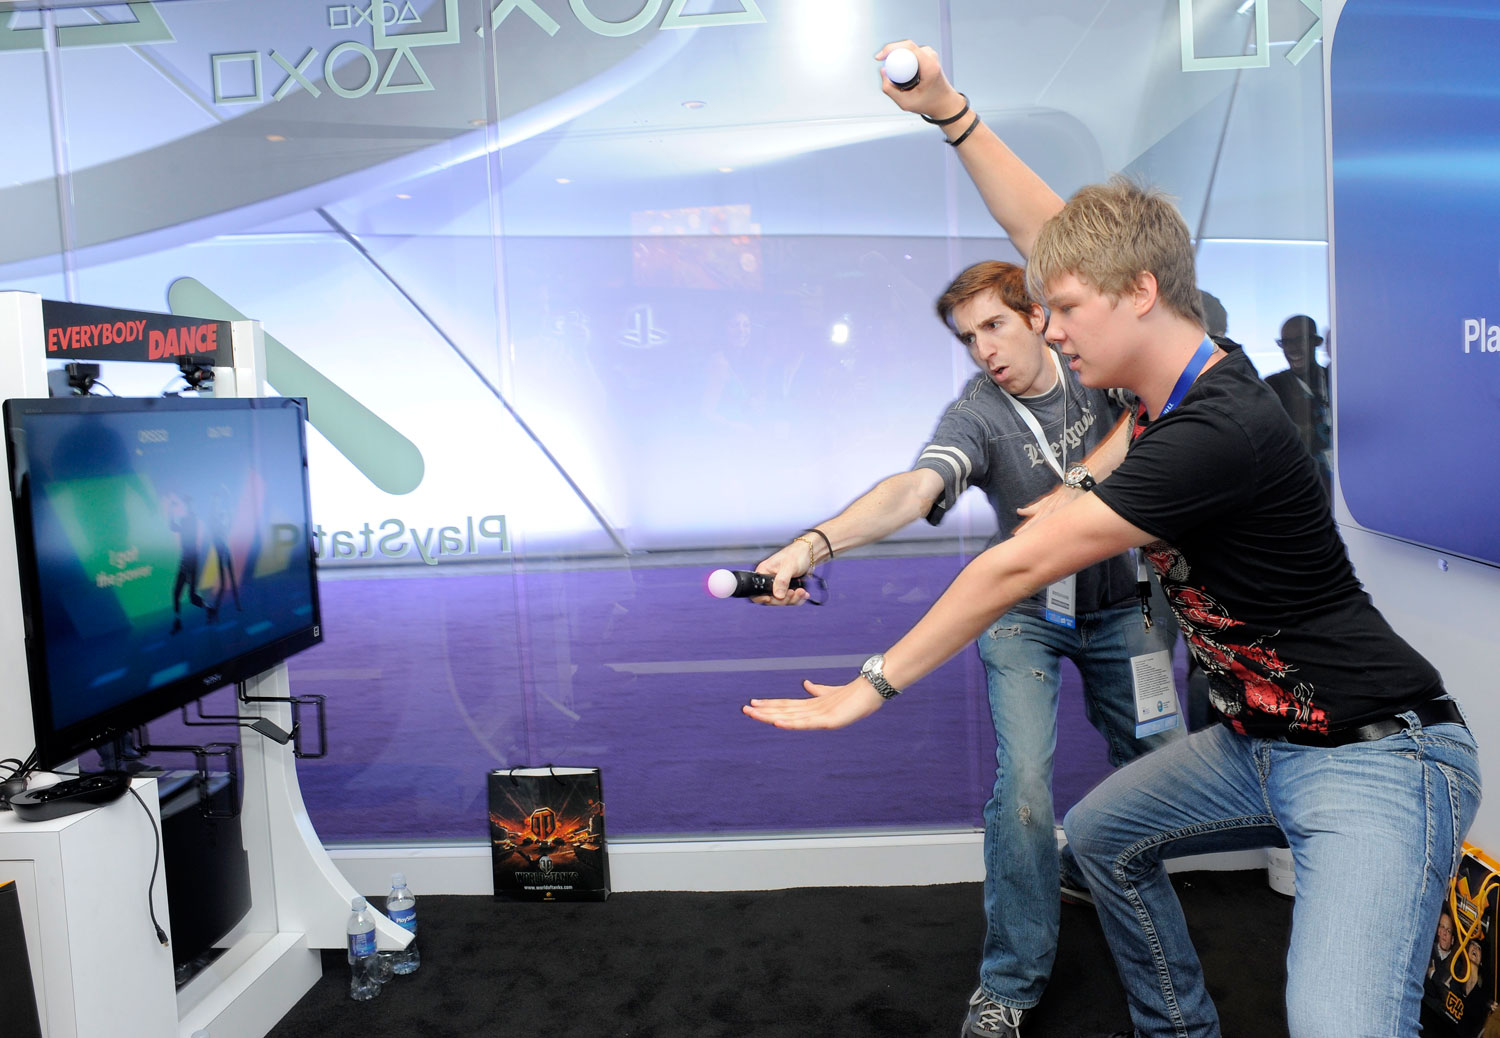 Gamers play with the Playstation Move at the Electronic Entertainment Expo (E3), in Los Angeles on June 9, 2011.